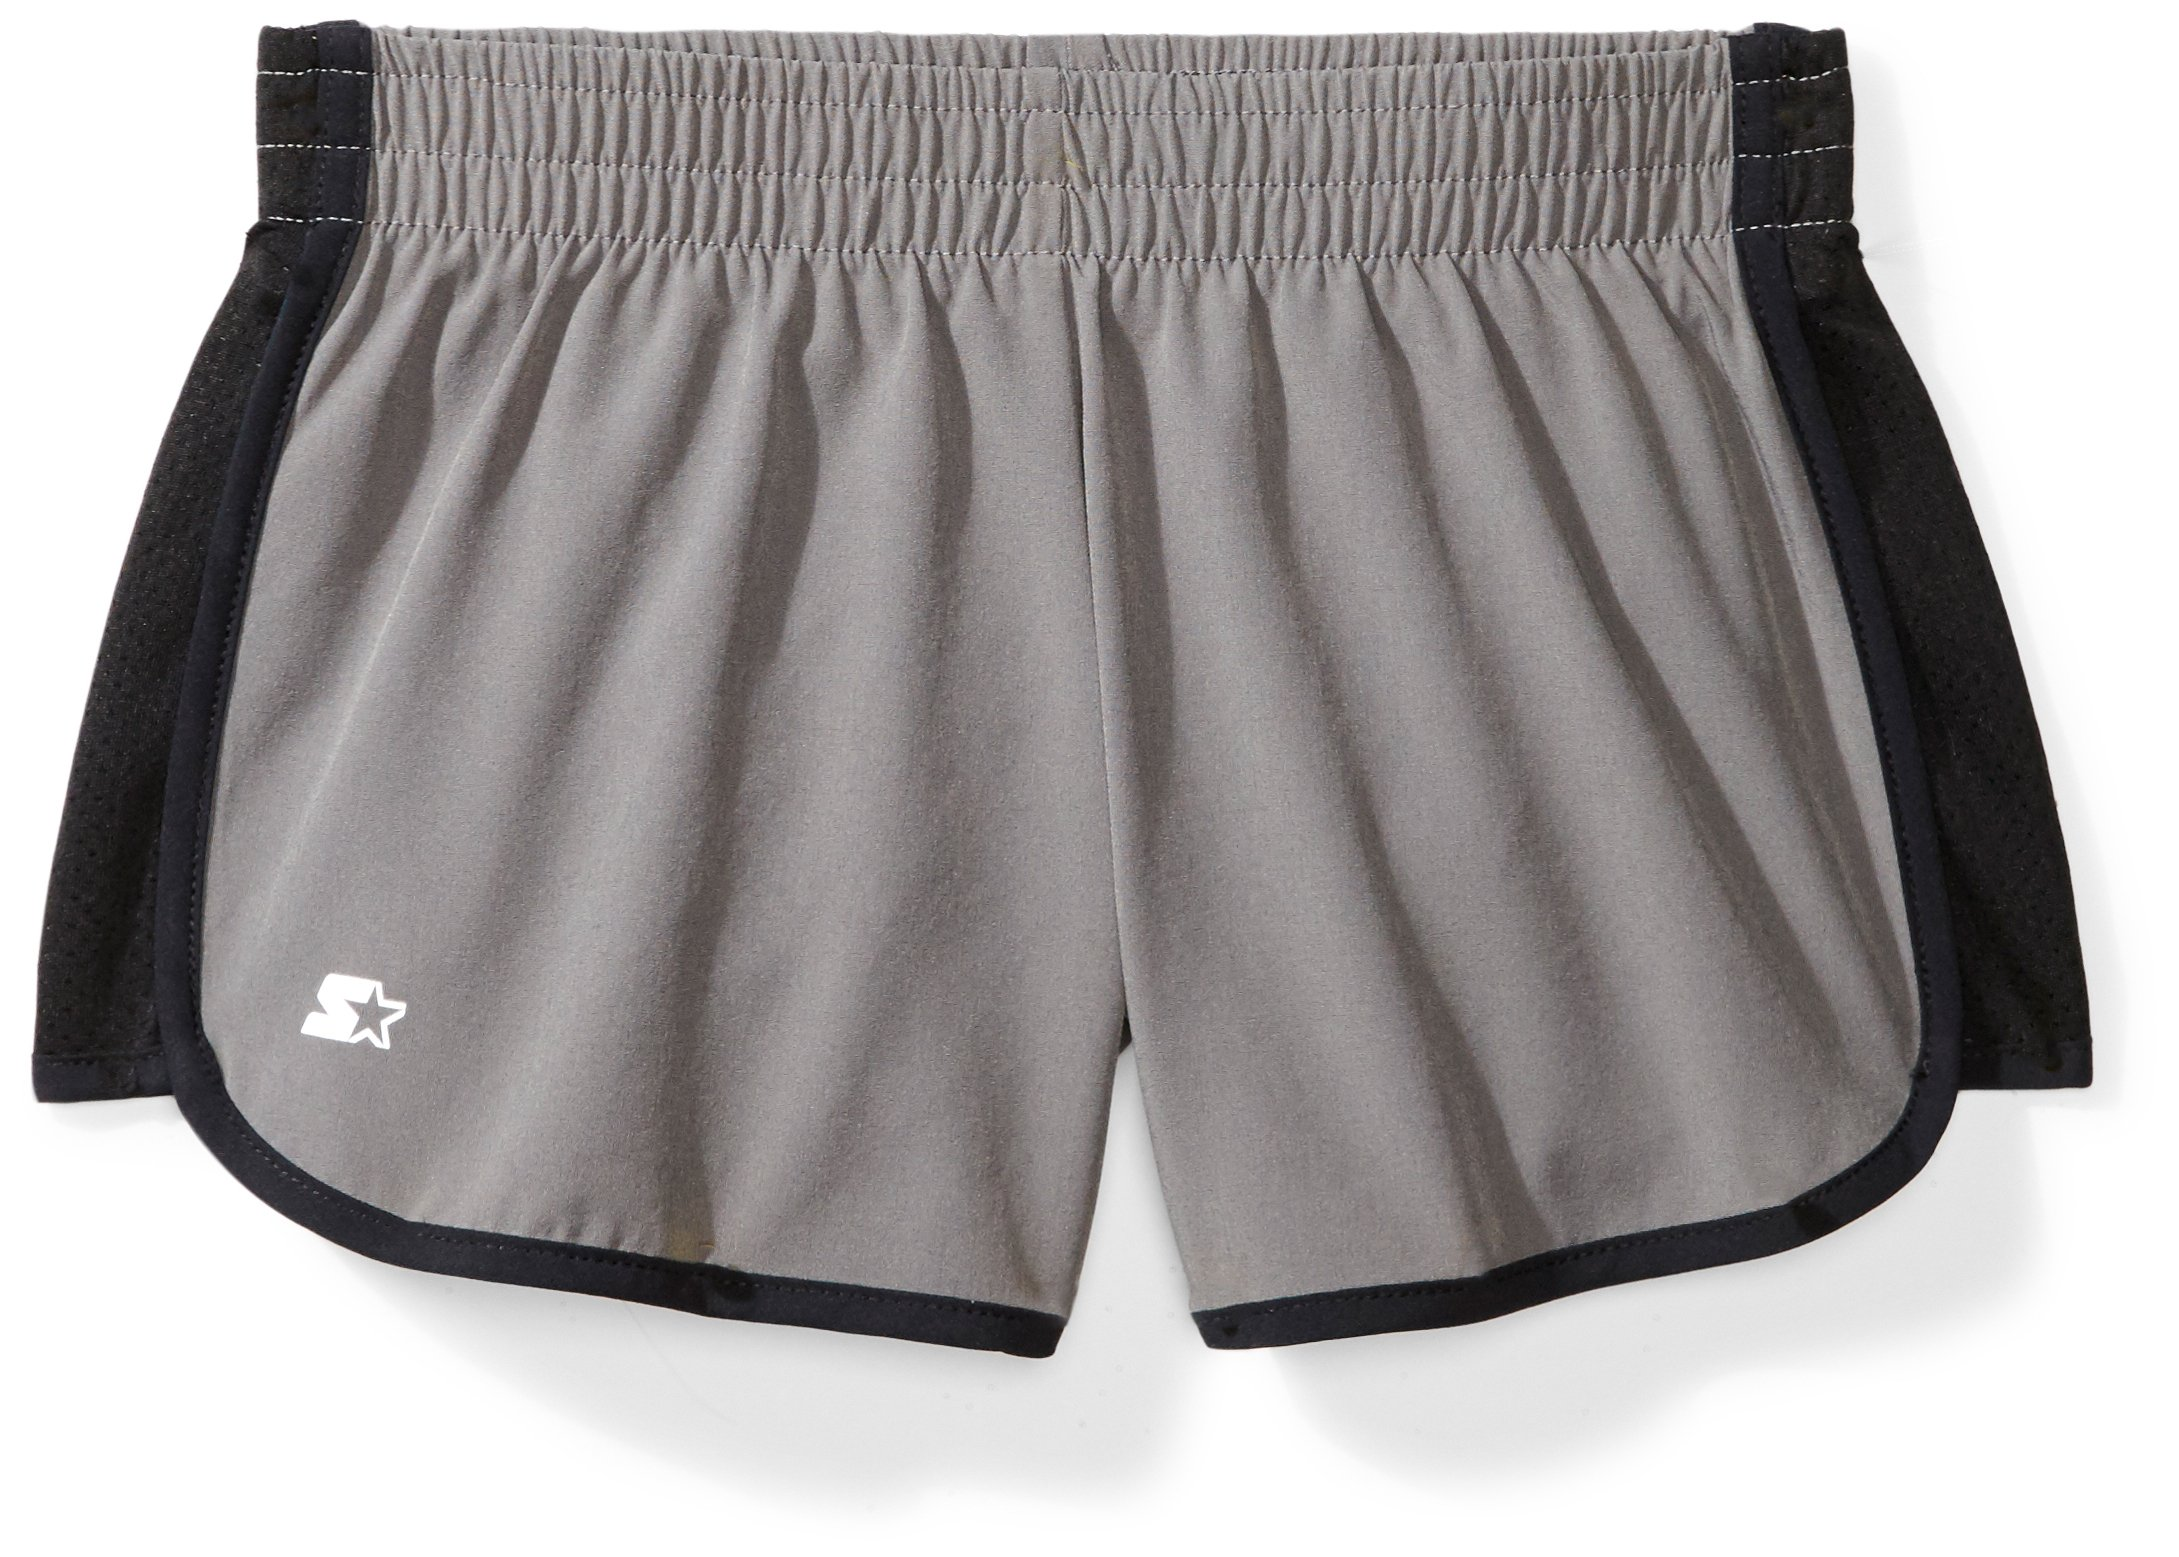 Starter Girls' 3'' Stretch Running Short, Amazon Exclusive, Iron Grey with Black, M (7/8) by Starter